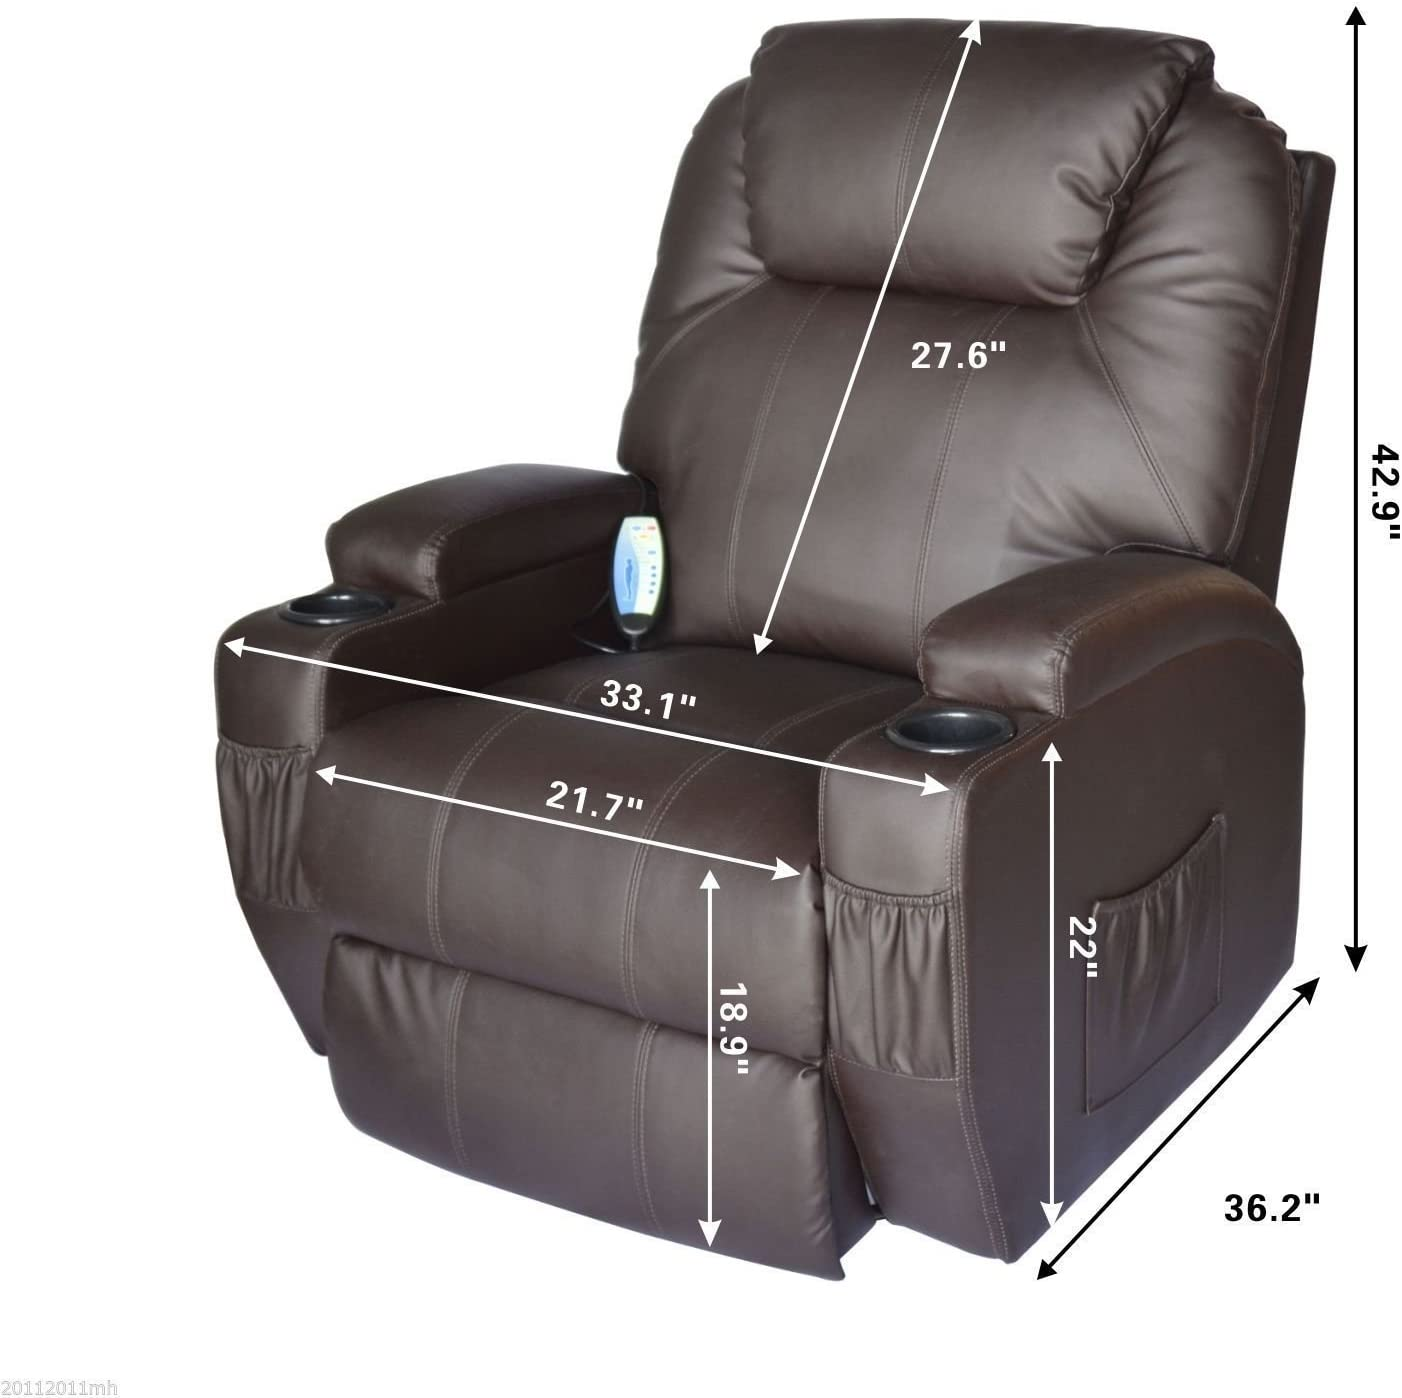 Homcom PU Leather Padded Recliner dimensions